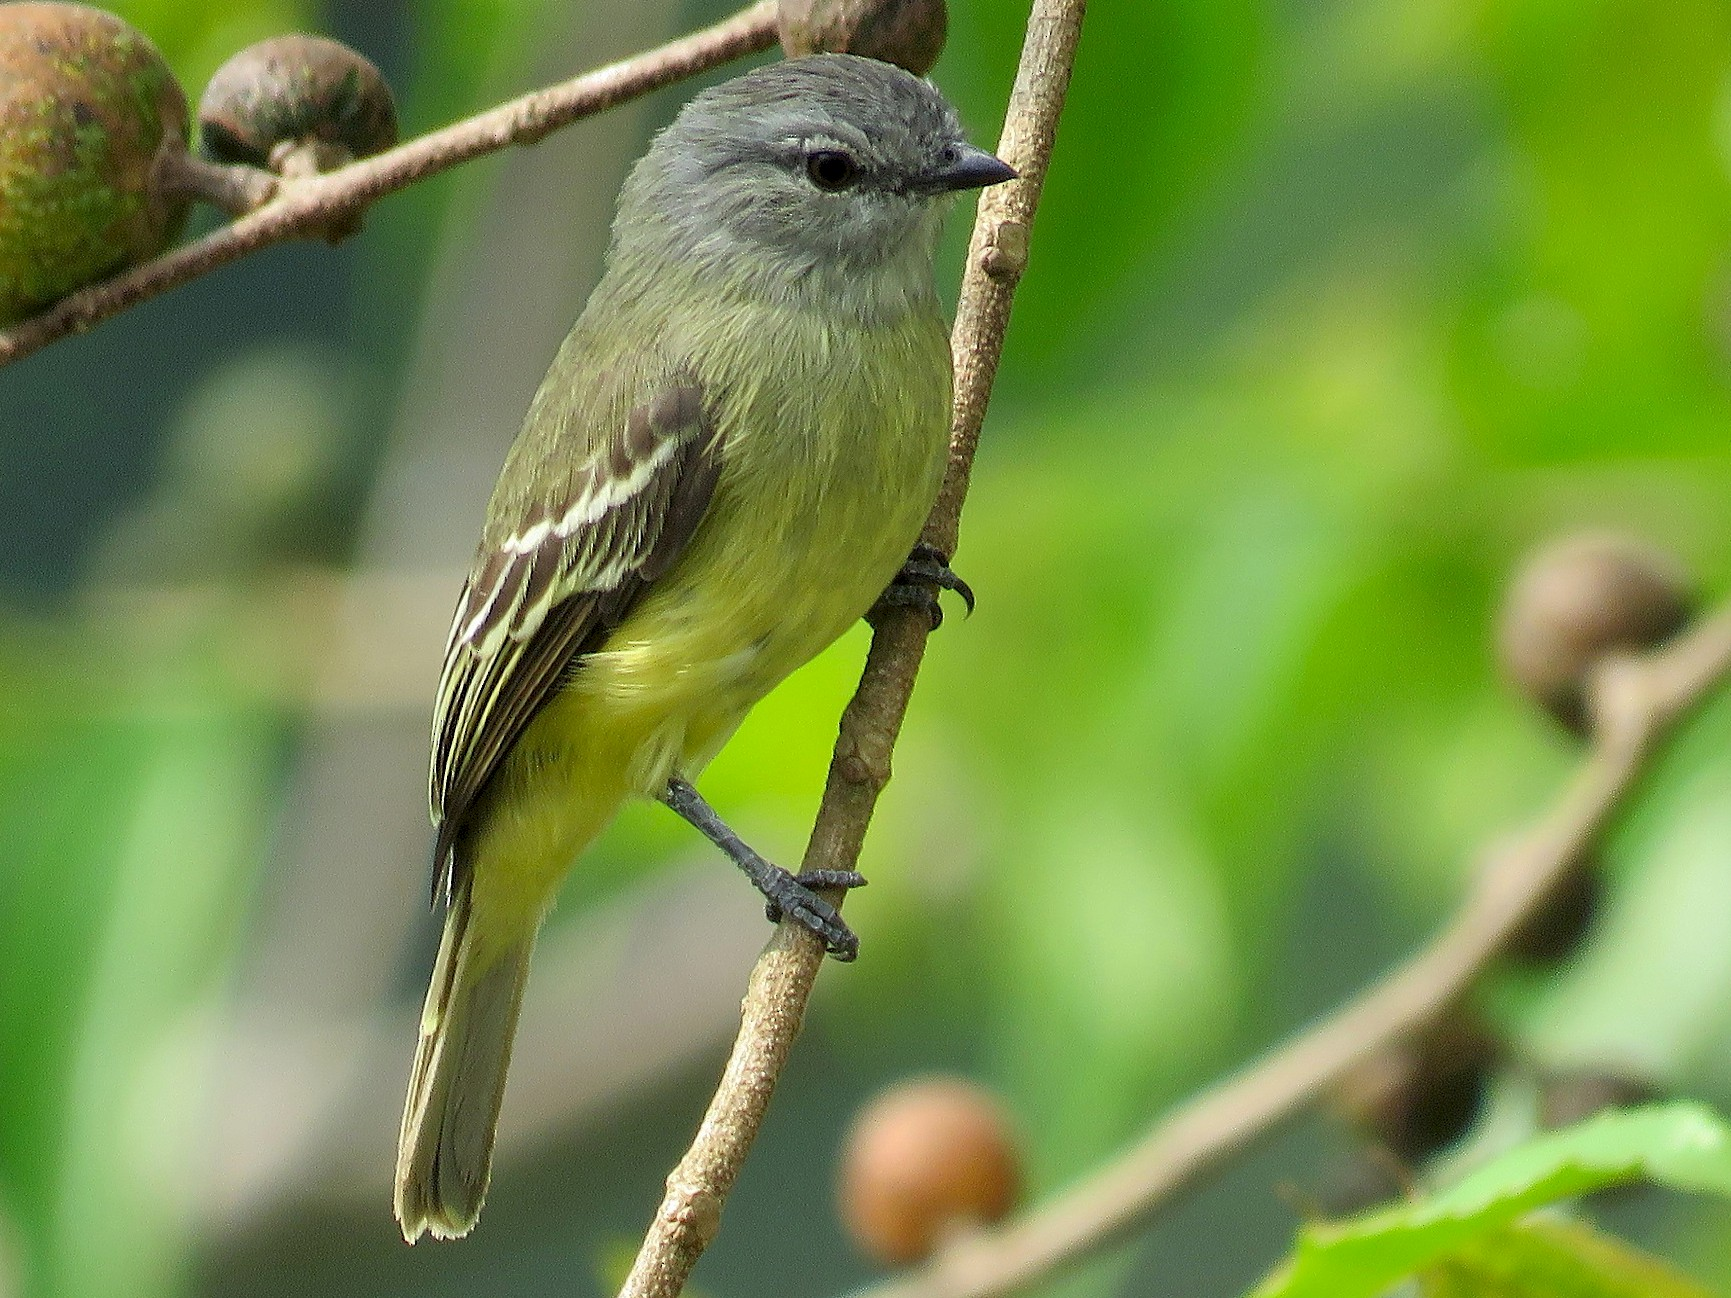 Yellow-crowned Tyrannulet - Rolando Jordan